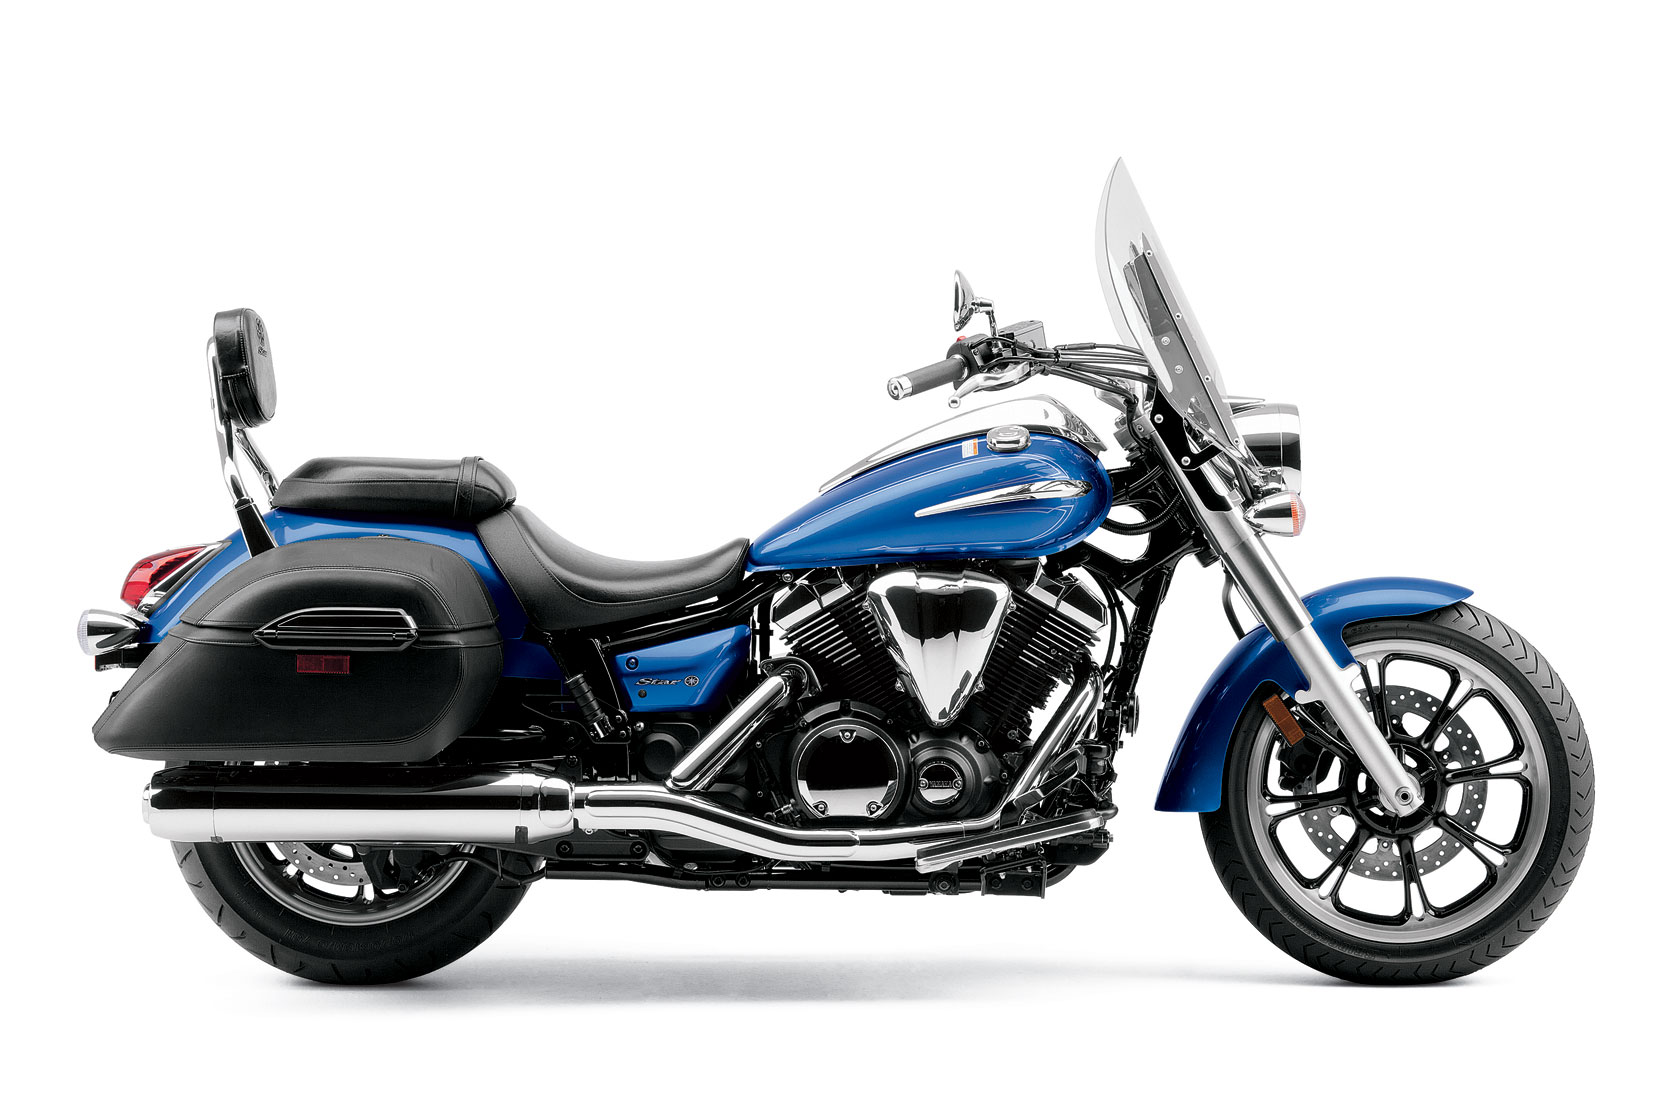 Yamaha V Star 950 Tourer 2012 #3